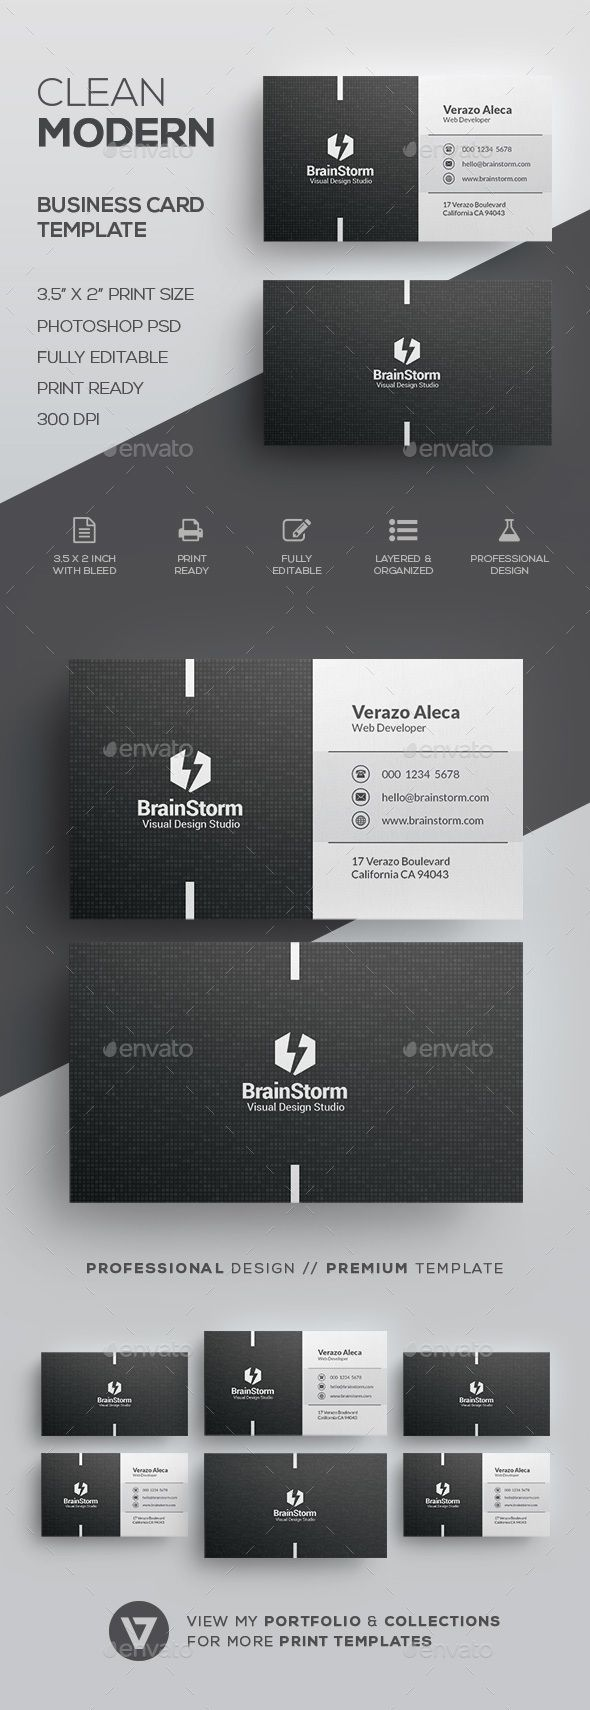 Clean Business Card Template - Corporate Business Cards Download here : graphicr...